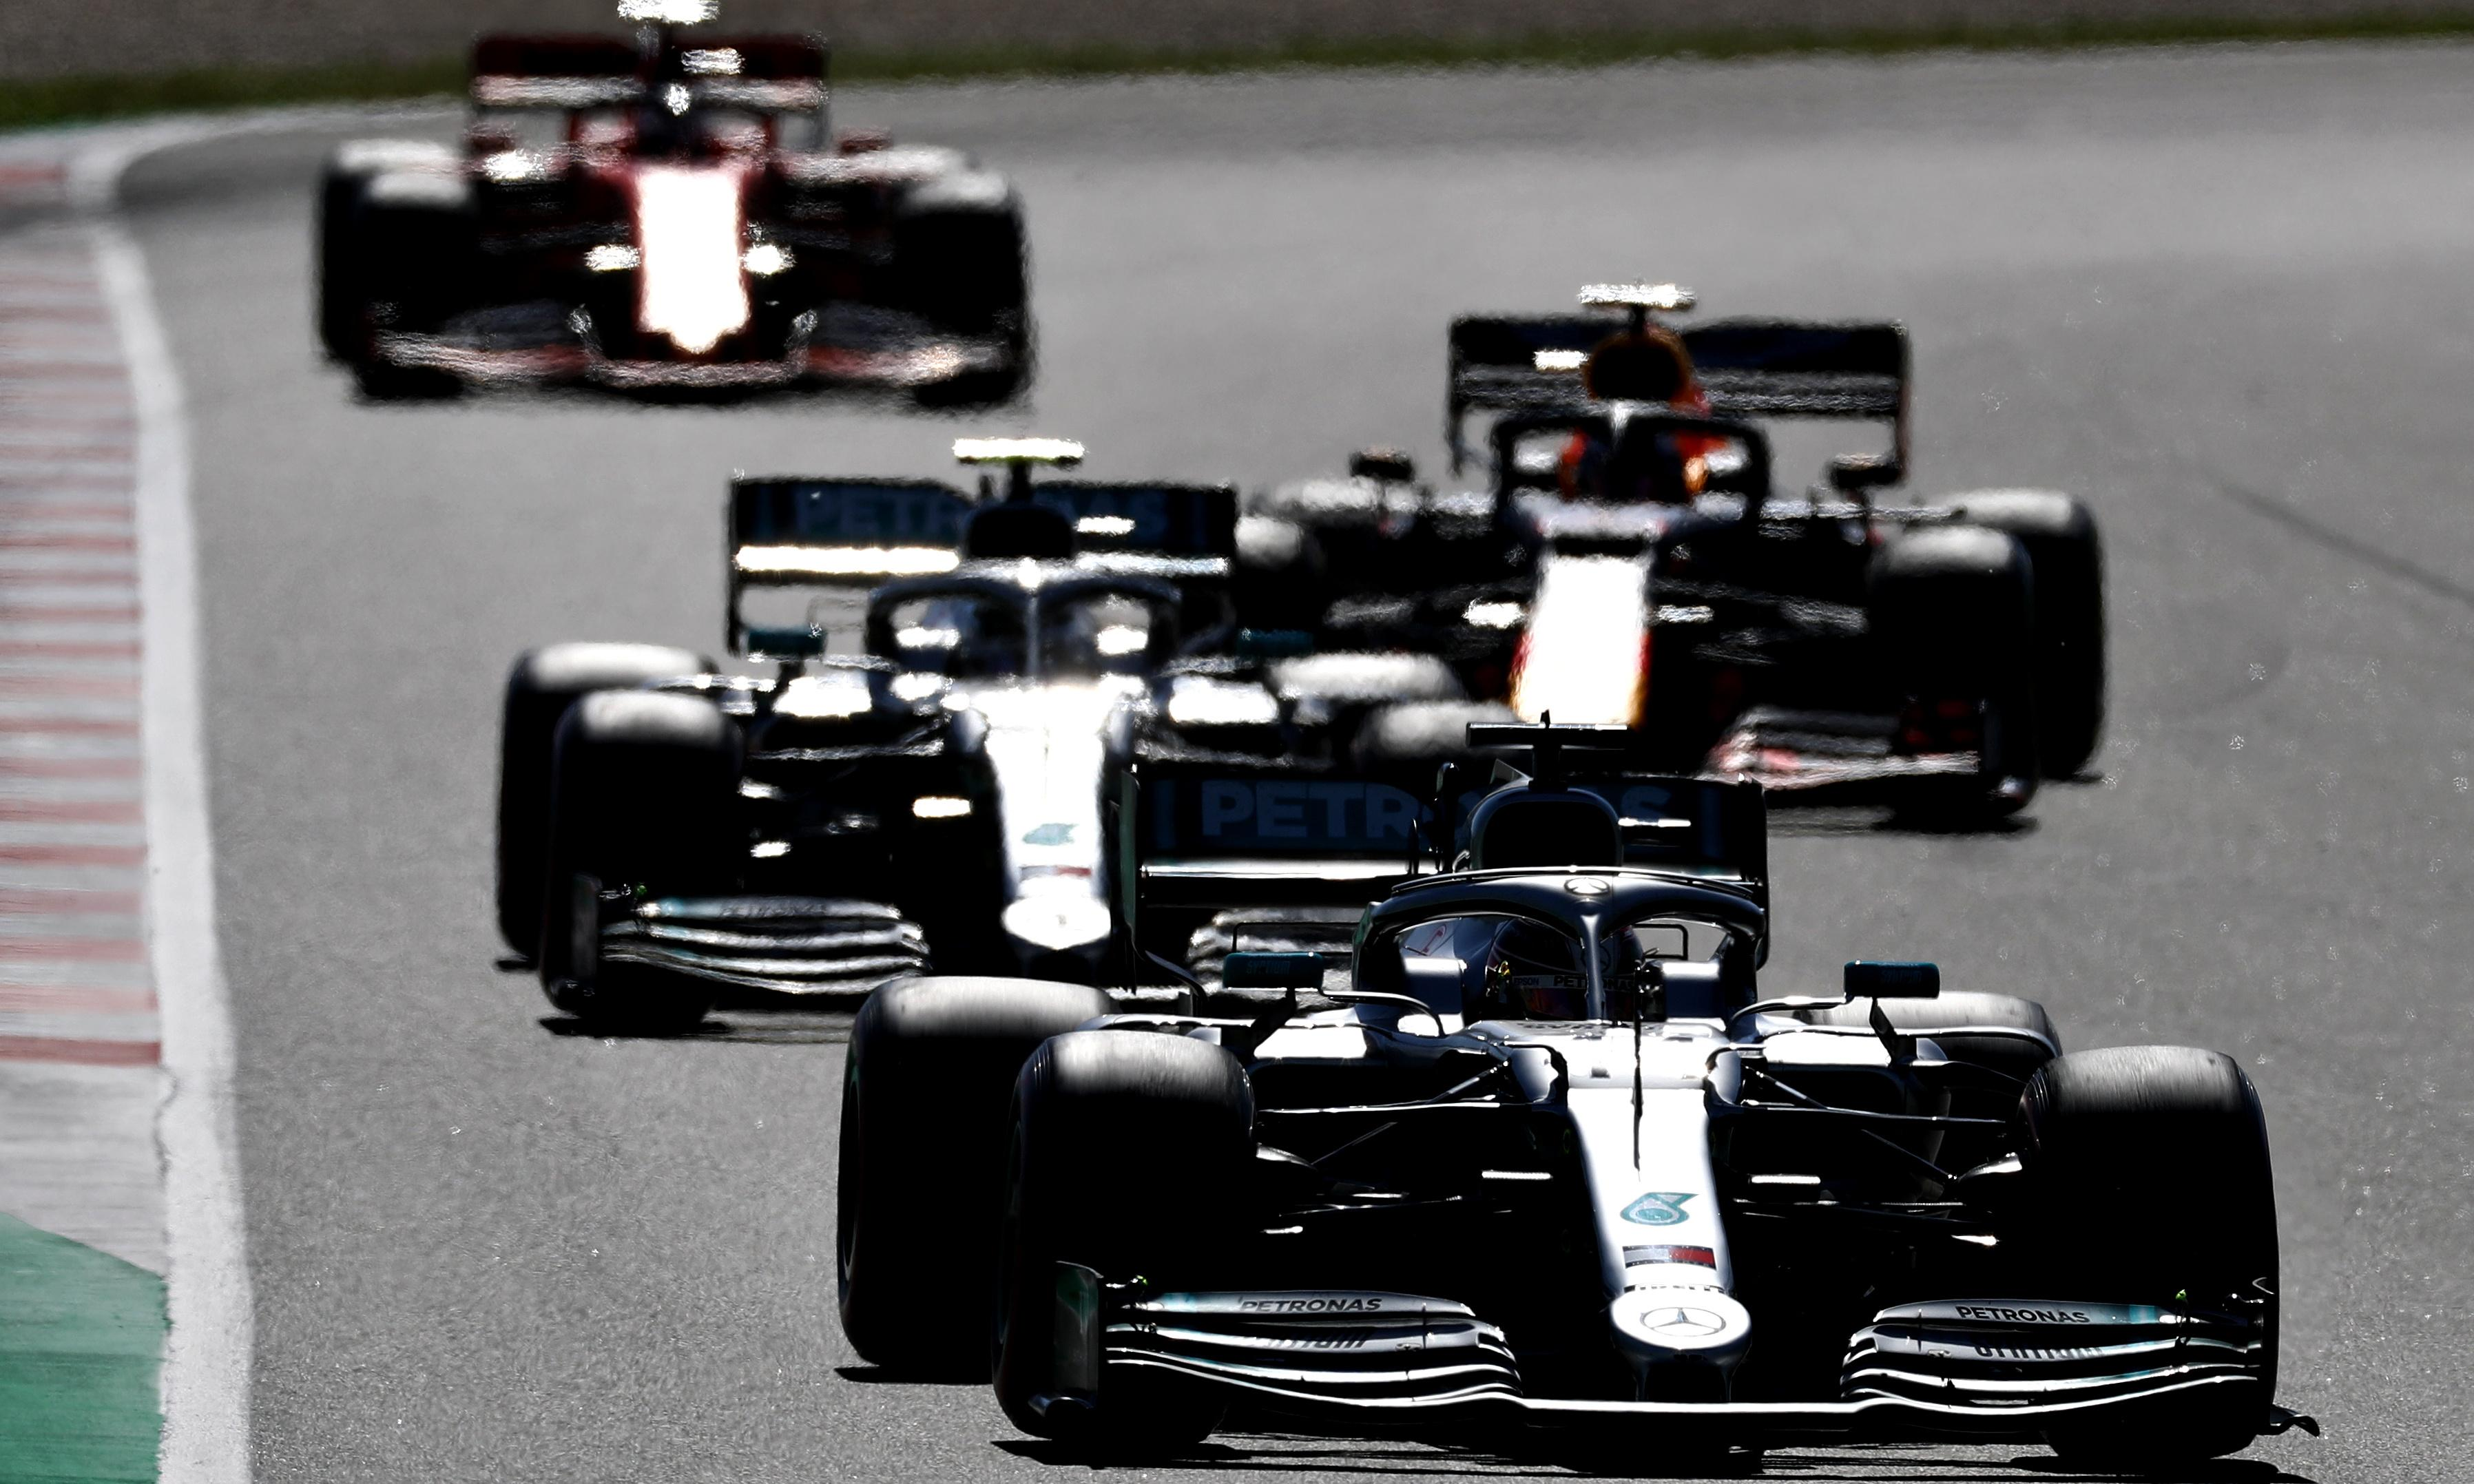 F1 racing returns to Netherlands for the first time in 35 years